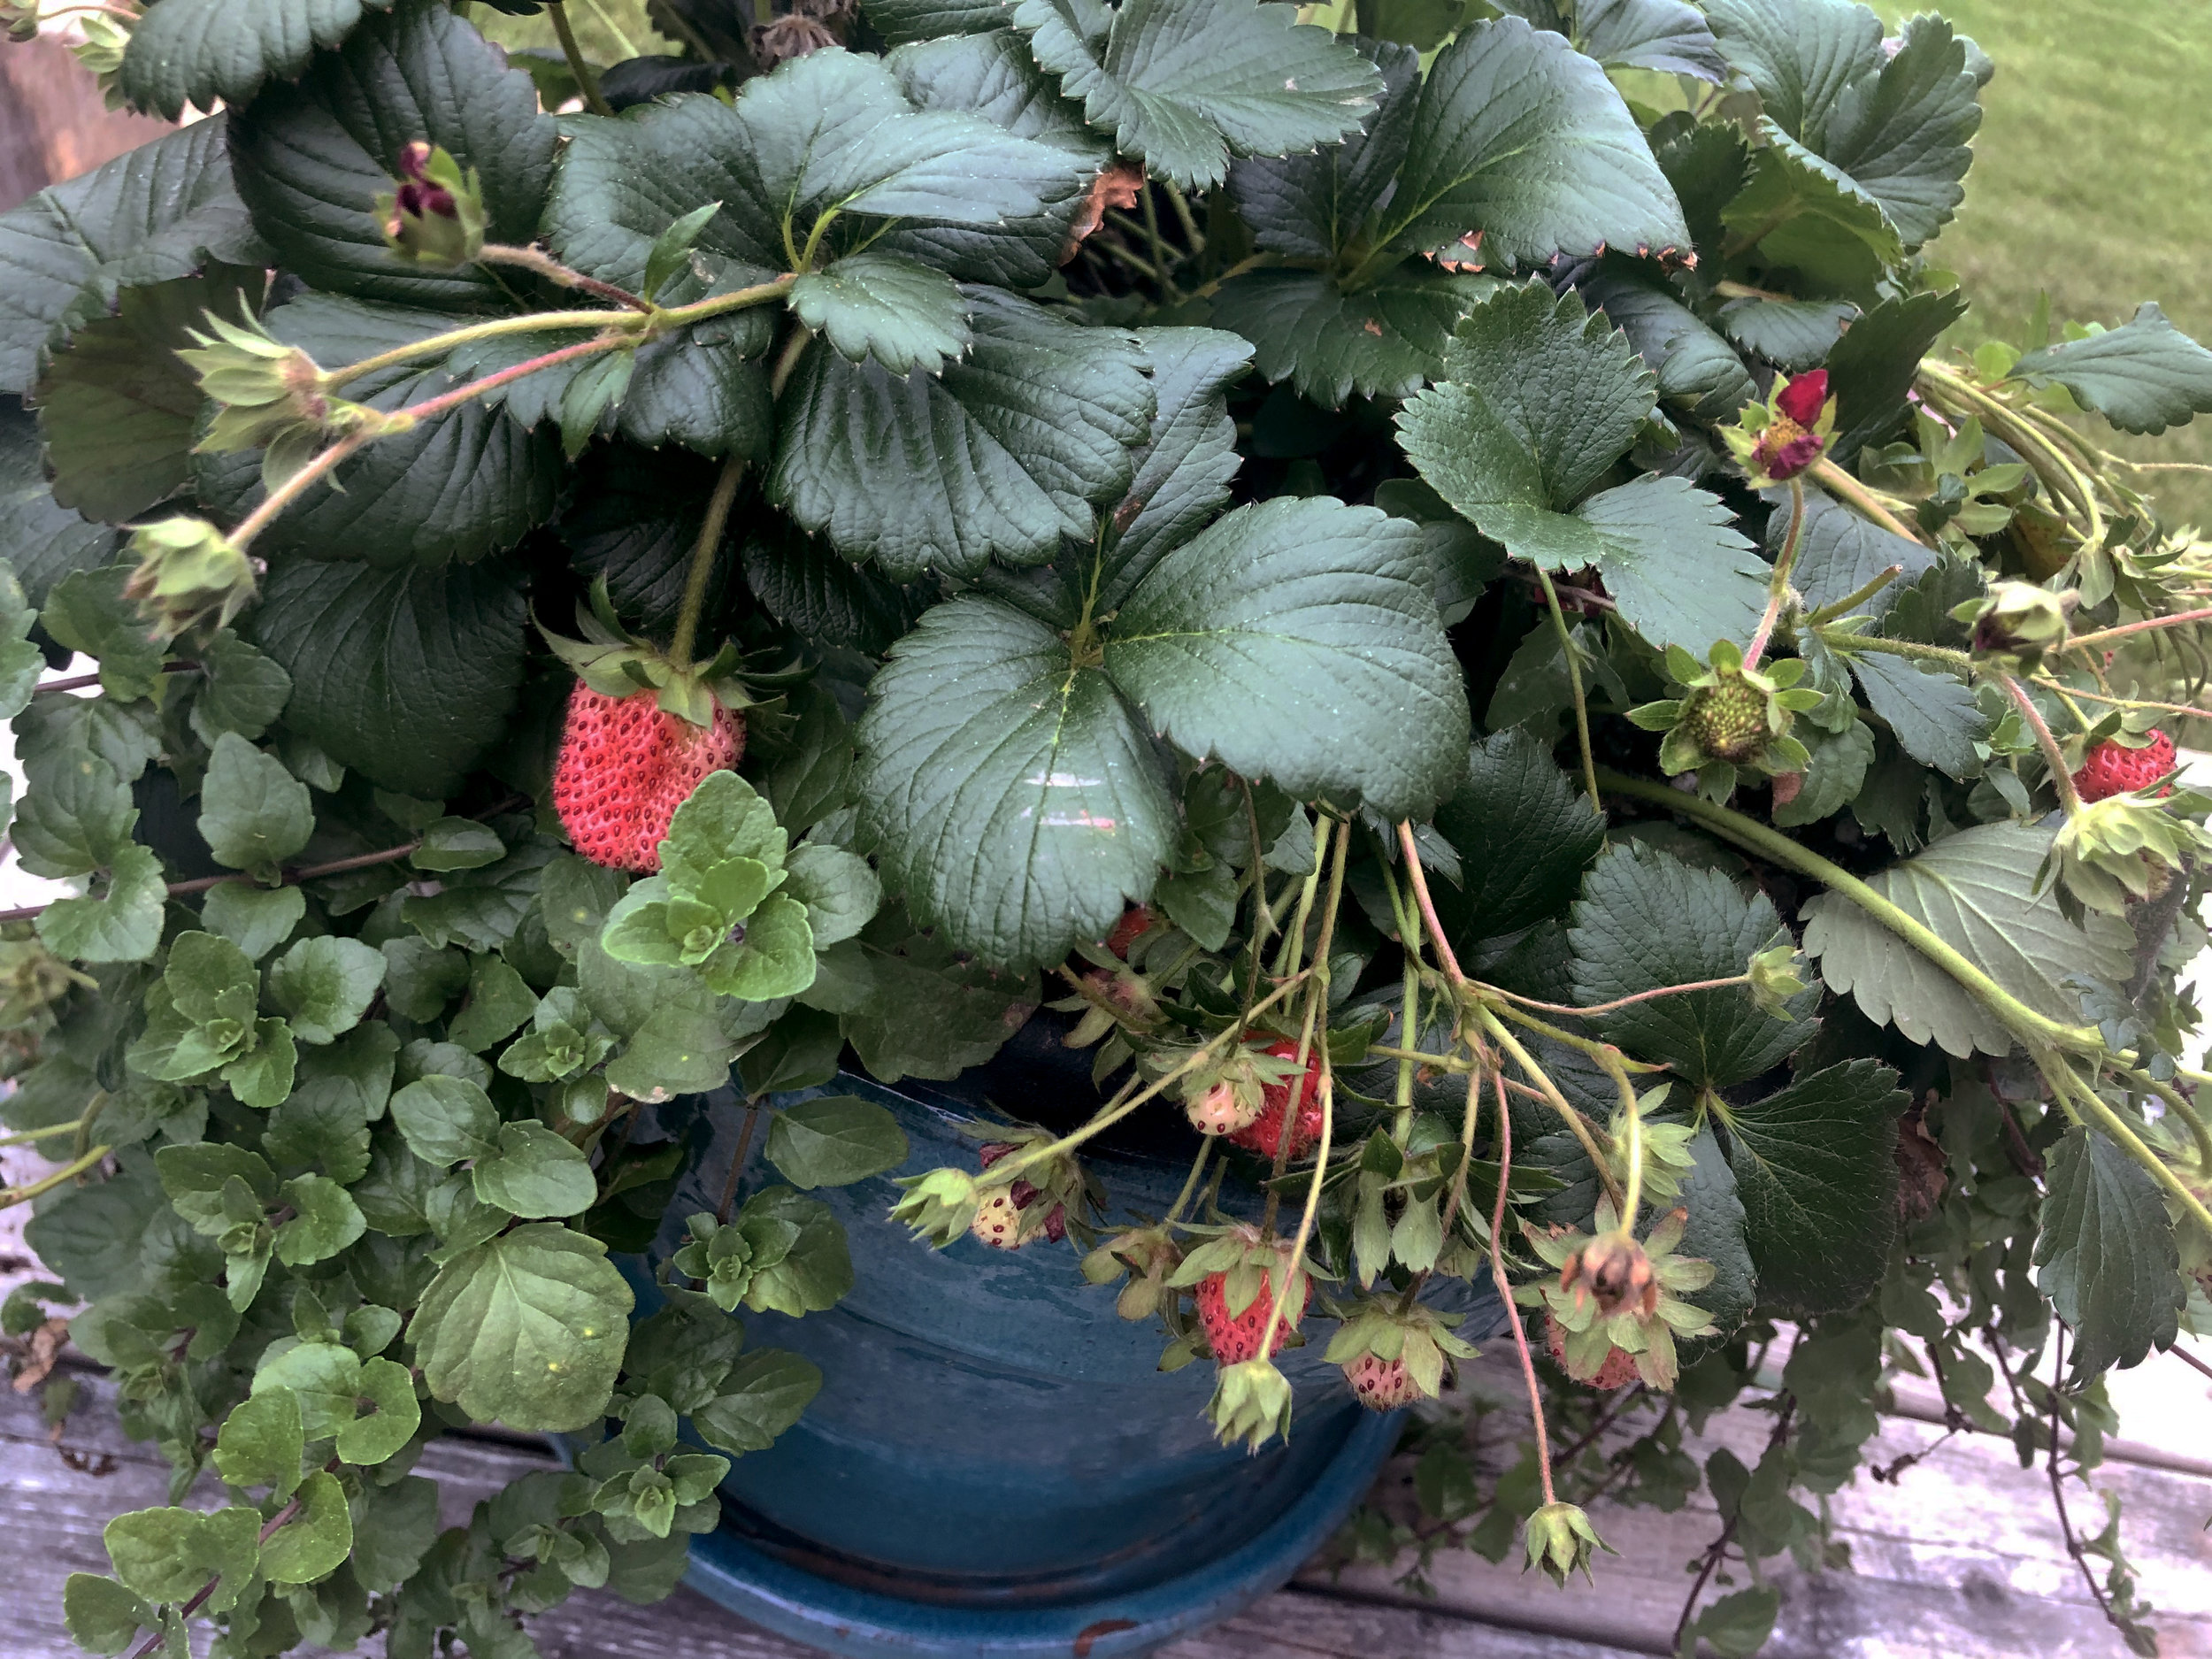 strawberries-in-planter.jpg